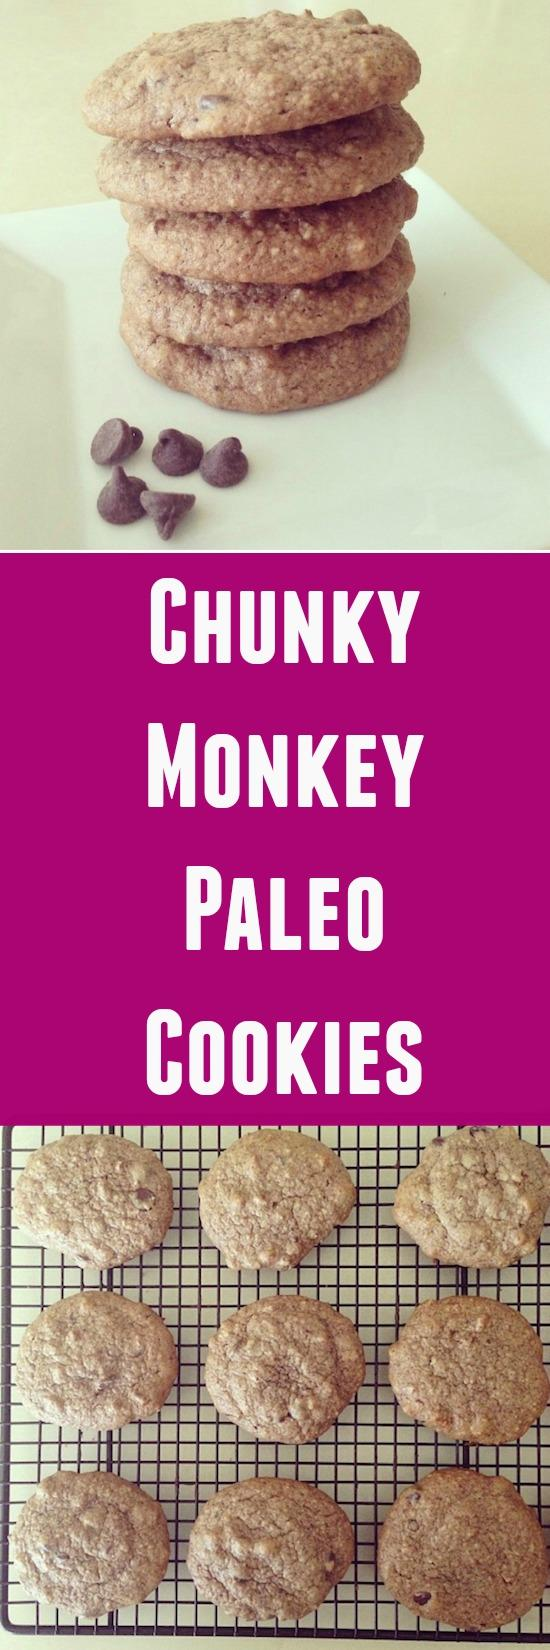 These Chunky Monkey Paleo Cookies are packed with delicious mix-ins and the perfect evening treat!